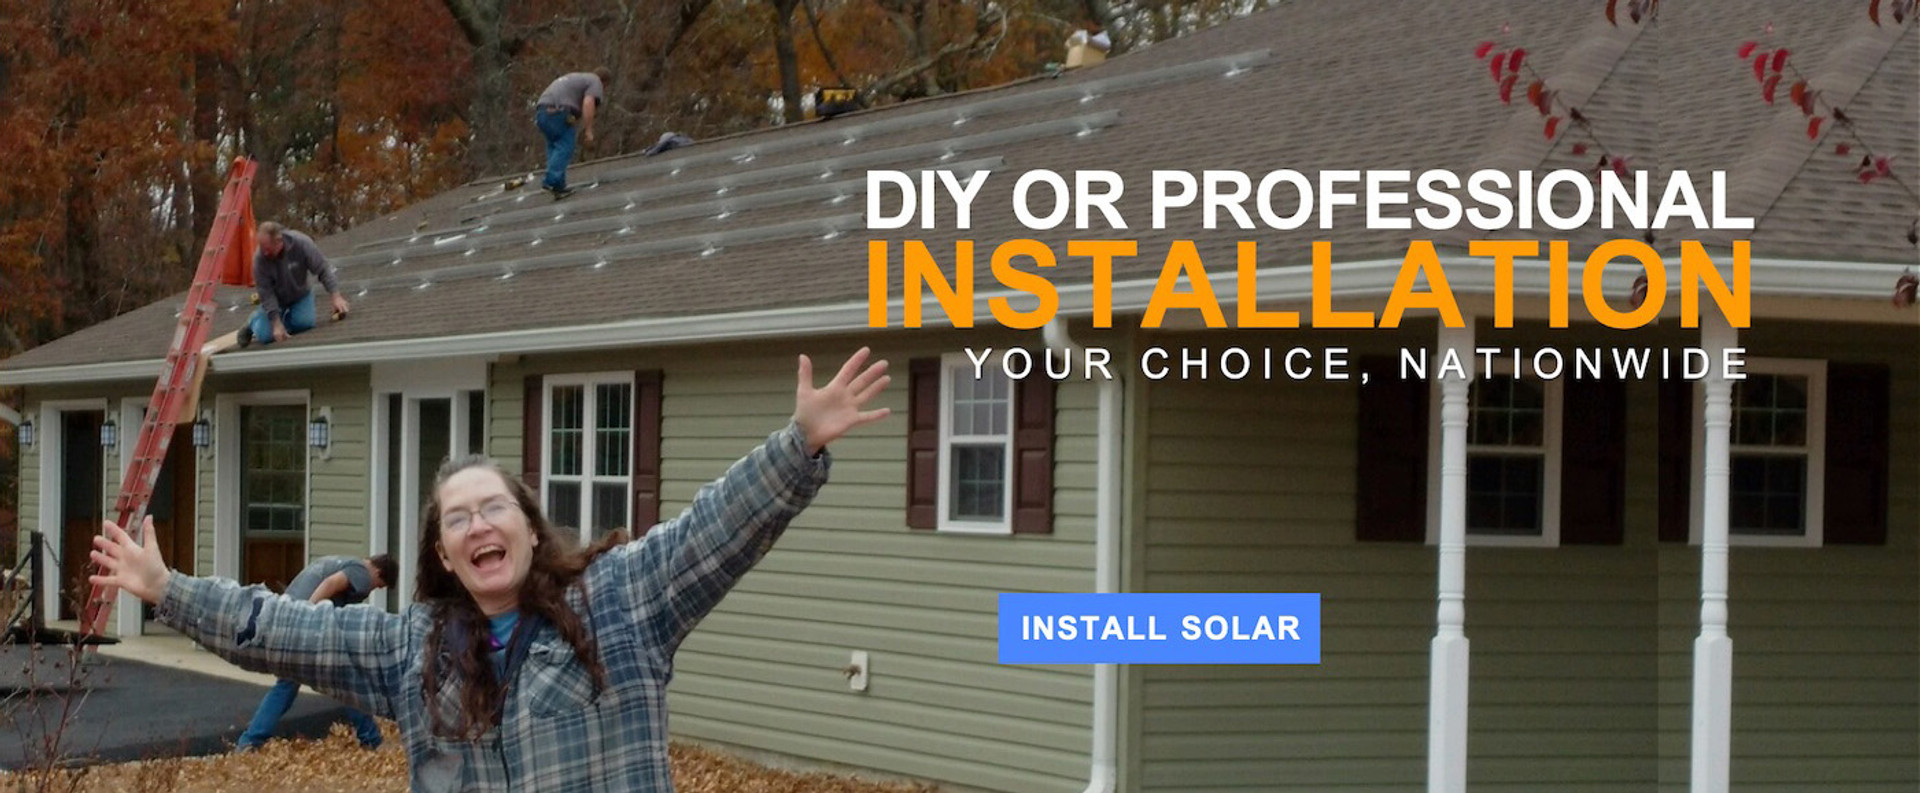 DIY or PRO solar installation